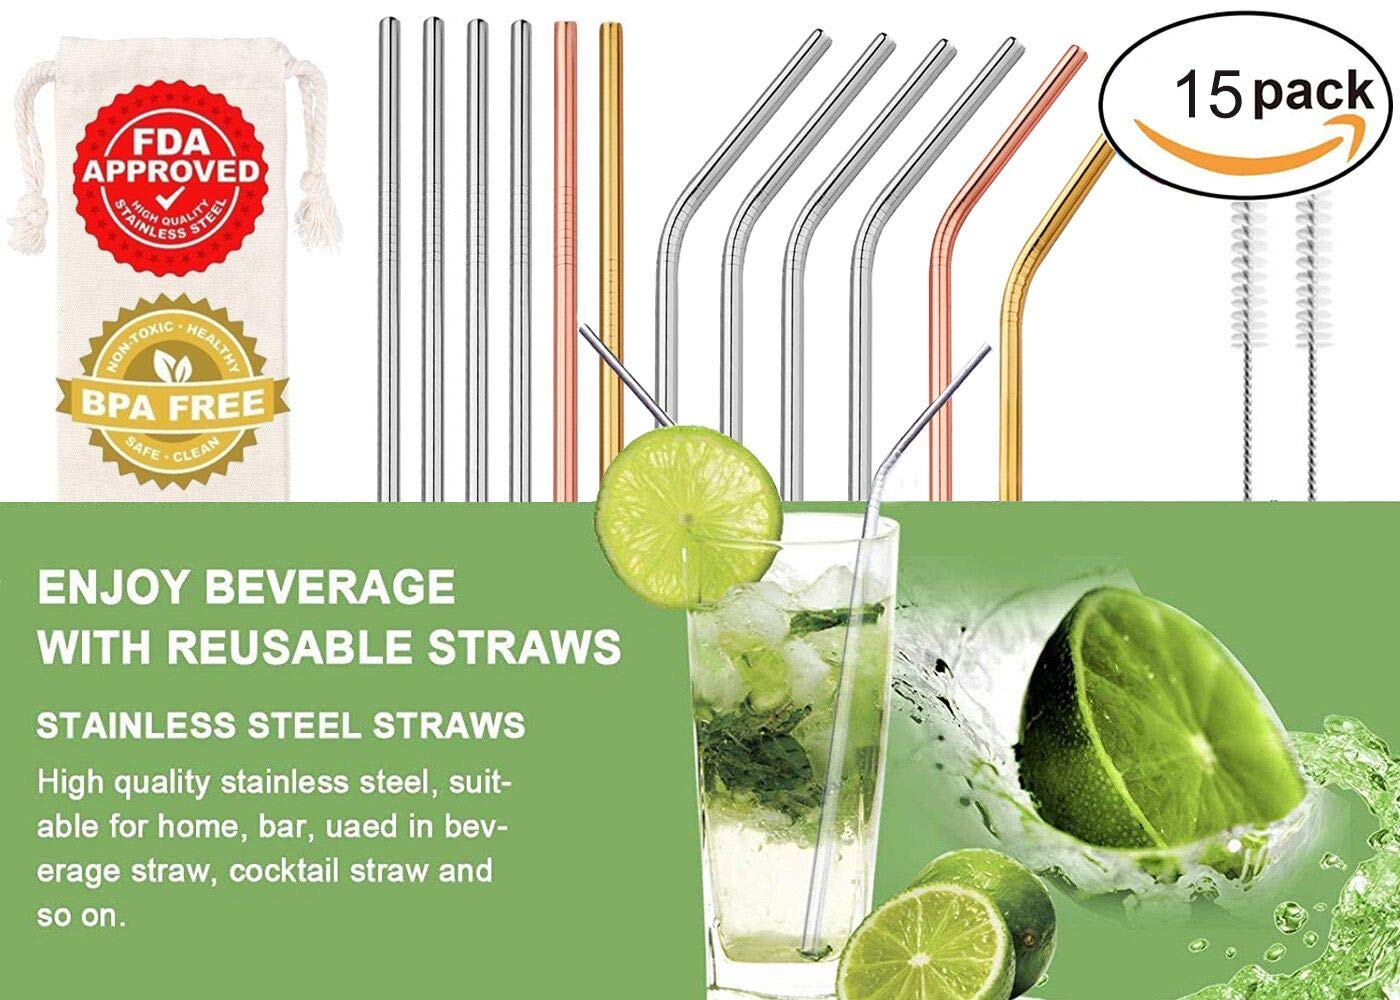 12+3 Pcs Reusable Stainless Steel Straws, 3 Colors Gold, Silver, Rose Gold, Eco-friendly Metal Straws,FDA-Approved Straws (Set of 15,6 Bent+6 Straight + 2 Brushes+1 Carry Bag)